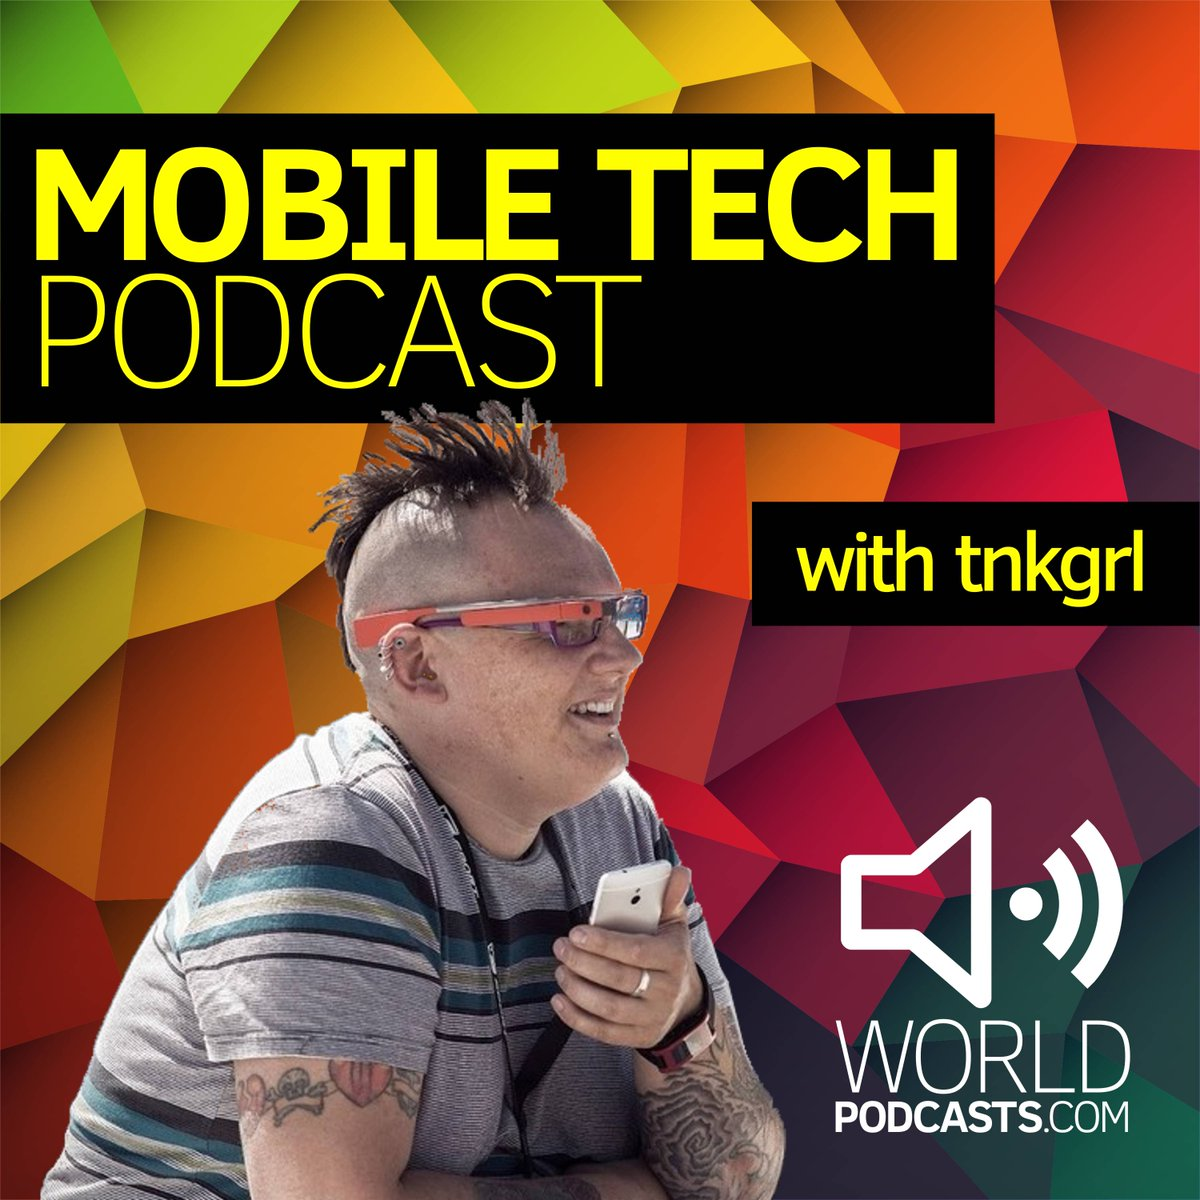 This past week was #GDC19, so I invited @jetscott to be my #MobTechCast guest once again! We talked about @Google's #Stadia, a bunch of #AR/#VR news, and @Apple's latest devices... Here's episode 102 :) https://worldpodcasts.com/gdc-2019-google-stadia-apple-ipads-imacs-and-airpods-with-scott-stein-of-cnet-mobile-tech-podcast-102/…